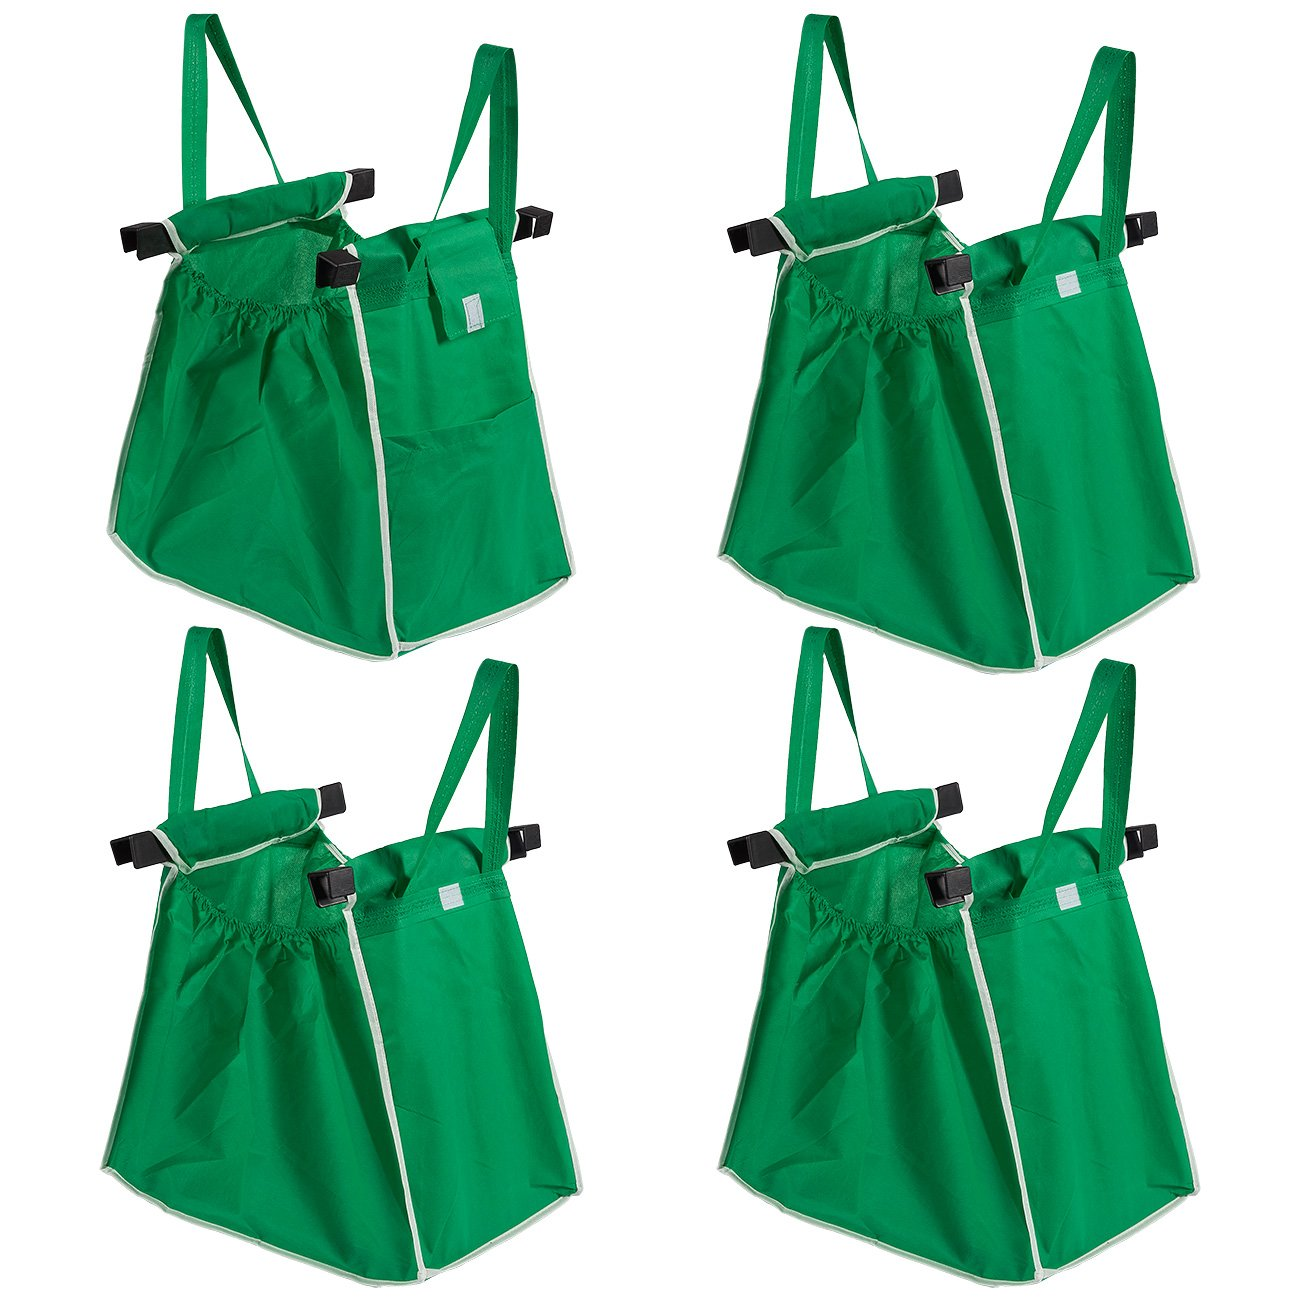 Trolley Bags, 4-Pack - Reusable Shopping Cart Bags for Grocery Shopping in Supermarket - Foldable Shopping Bags, Green Juvale